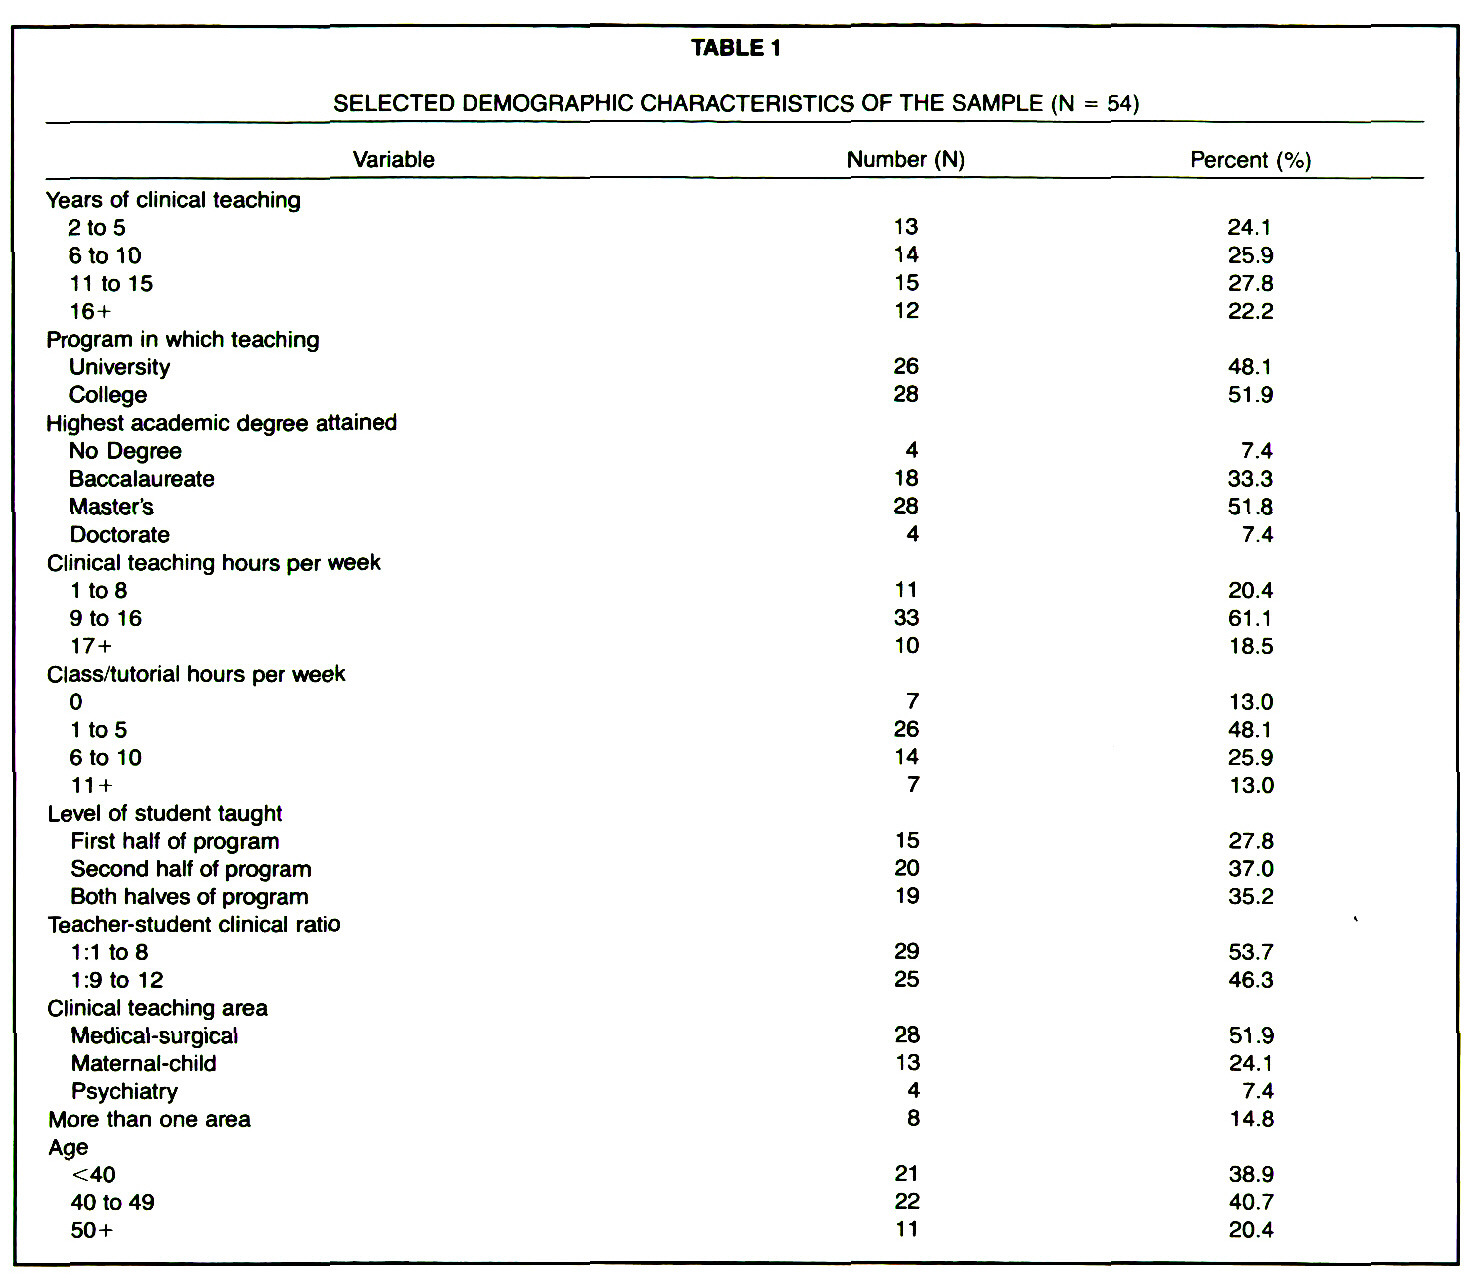 TABLE 1SELECTED DEMOGRAPHIC CHARACTERISTICS OF THE SAMPLE (N = 54)